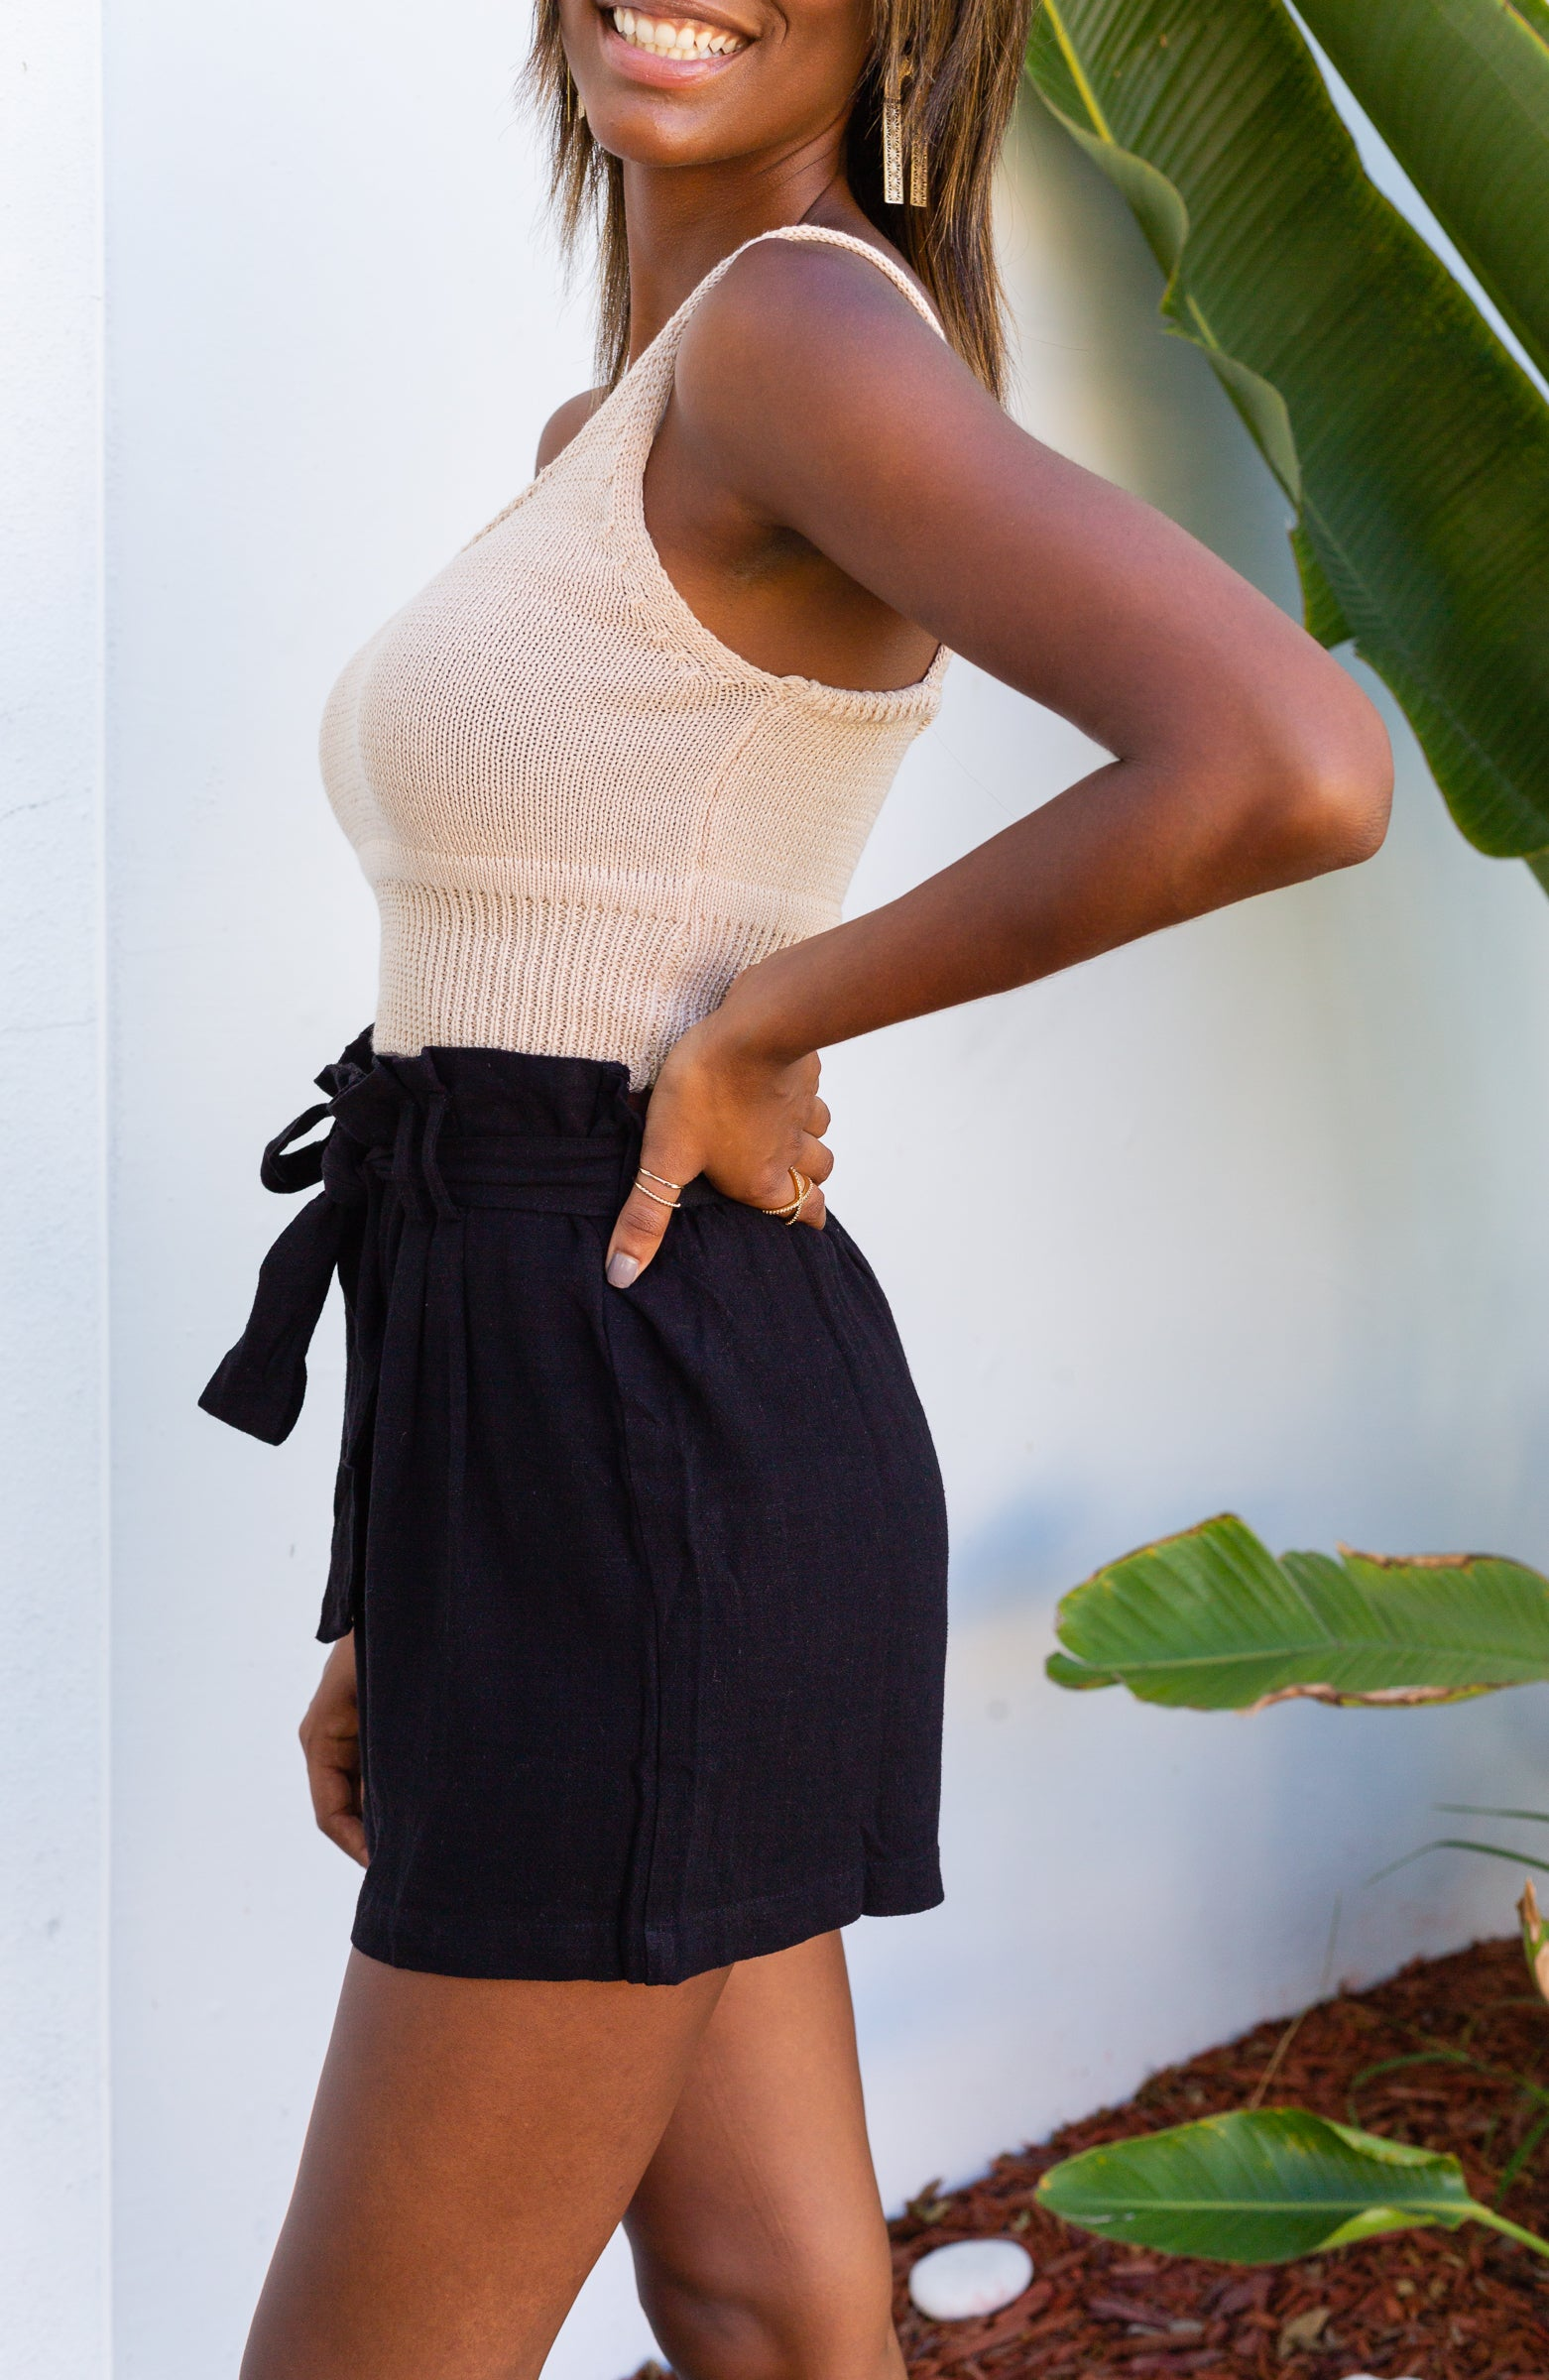 These black shorts have a paper bag style elastic waistband with button detailing before going down into relaxed and comfortable shorts.